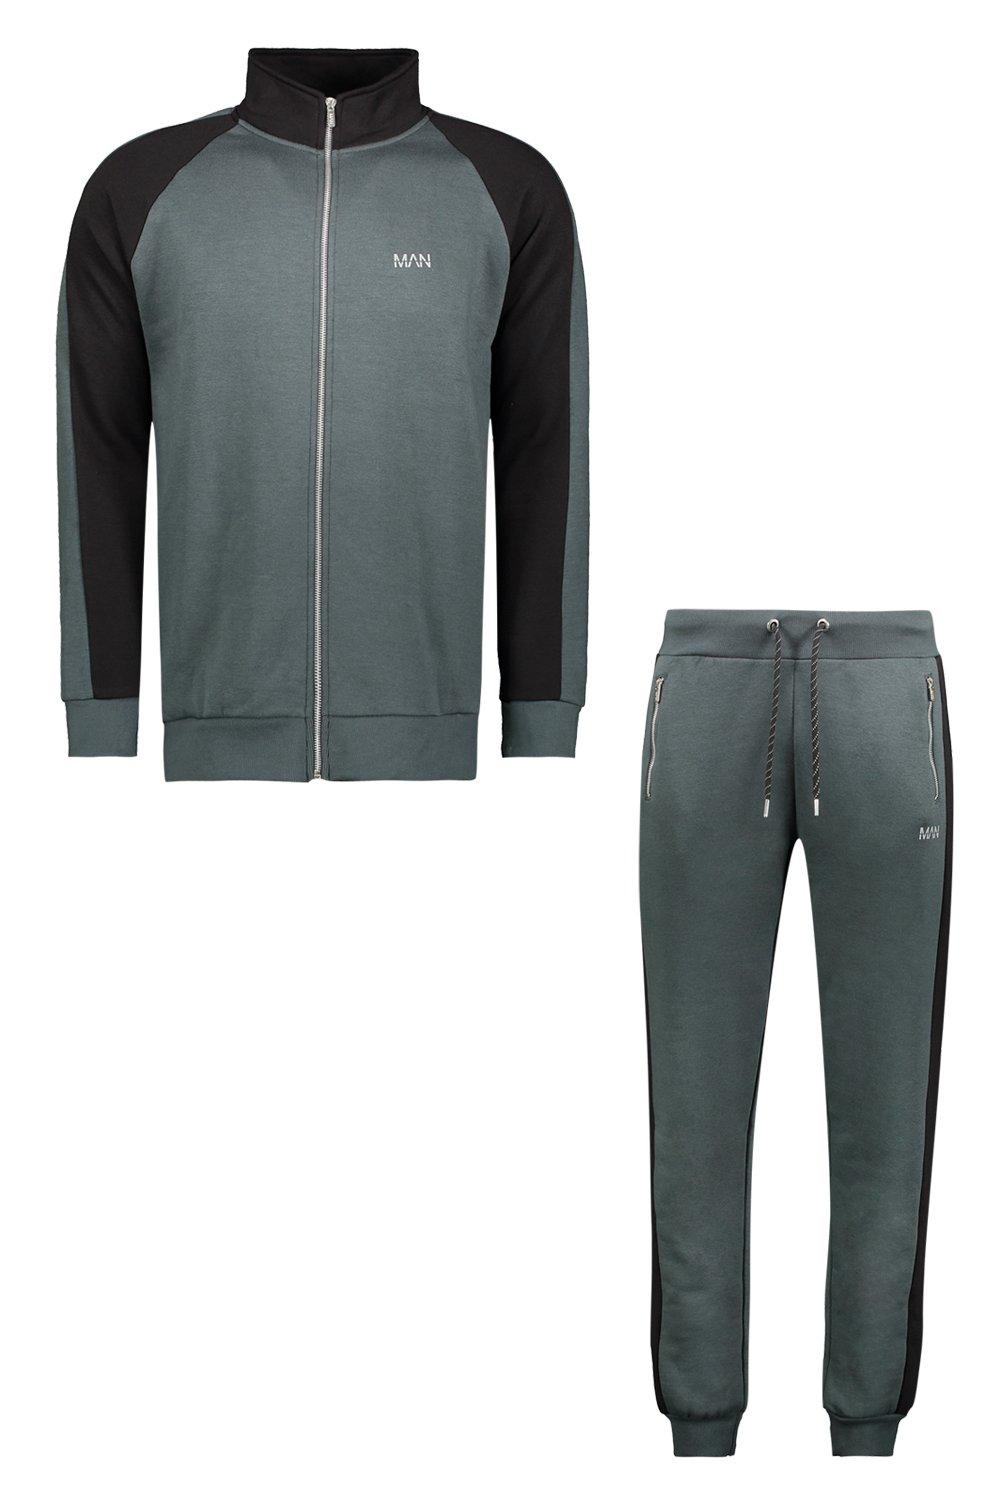 boohooMAN urban chic Active Skinny Funnel Neck Tracksuit